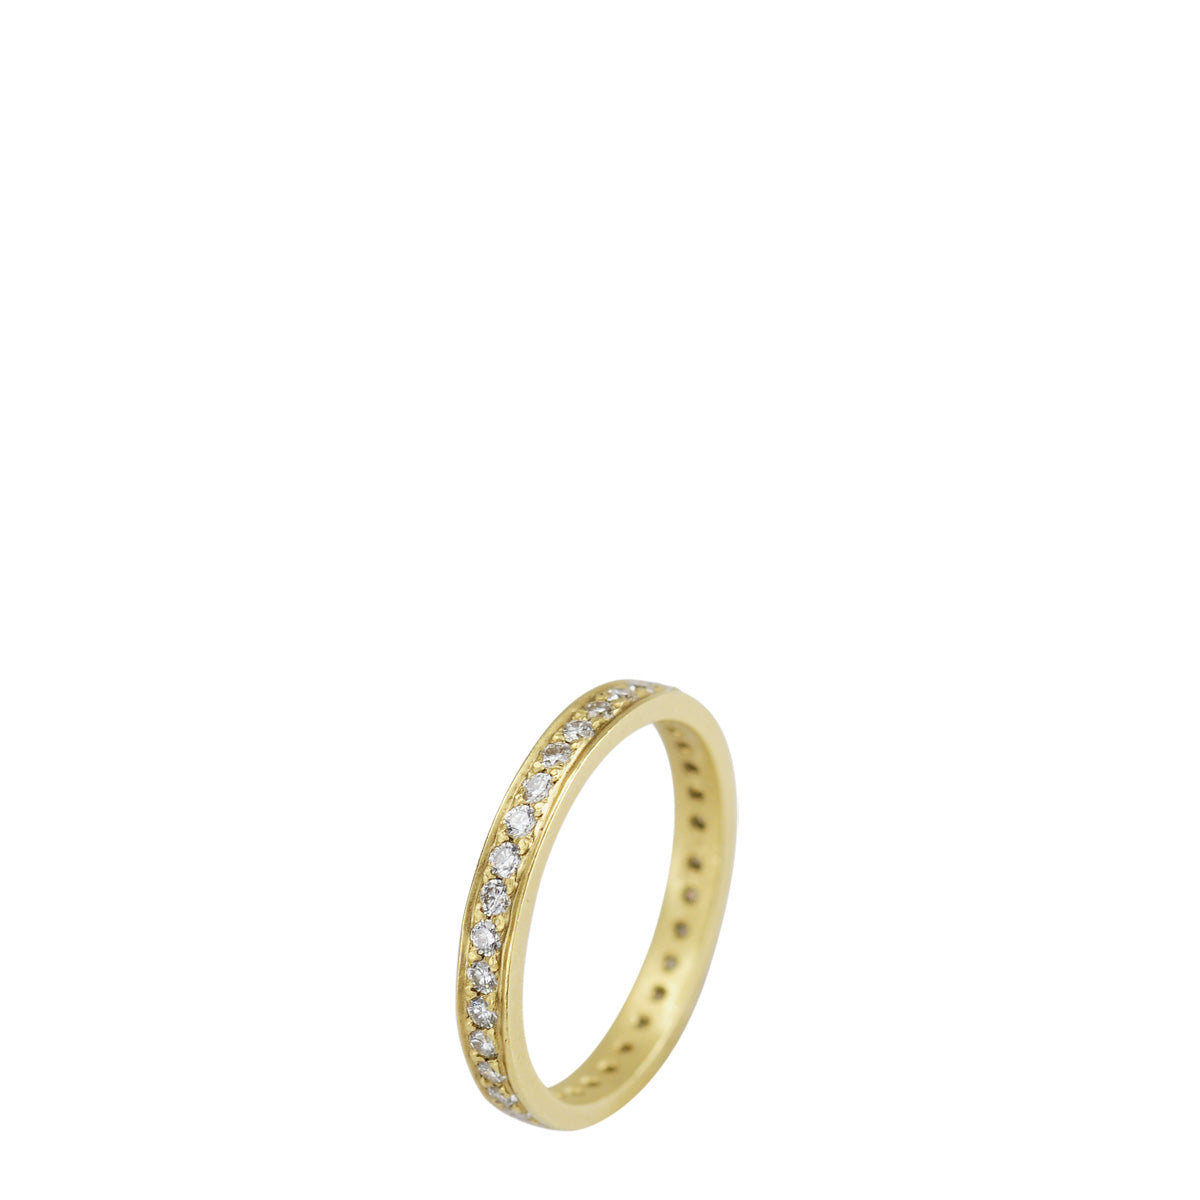 18K Gold 2.5mm Band with 1.5mm Diamonds